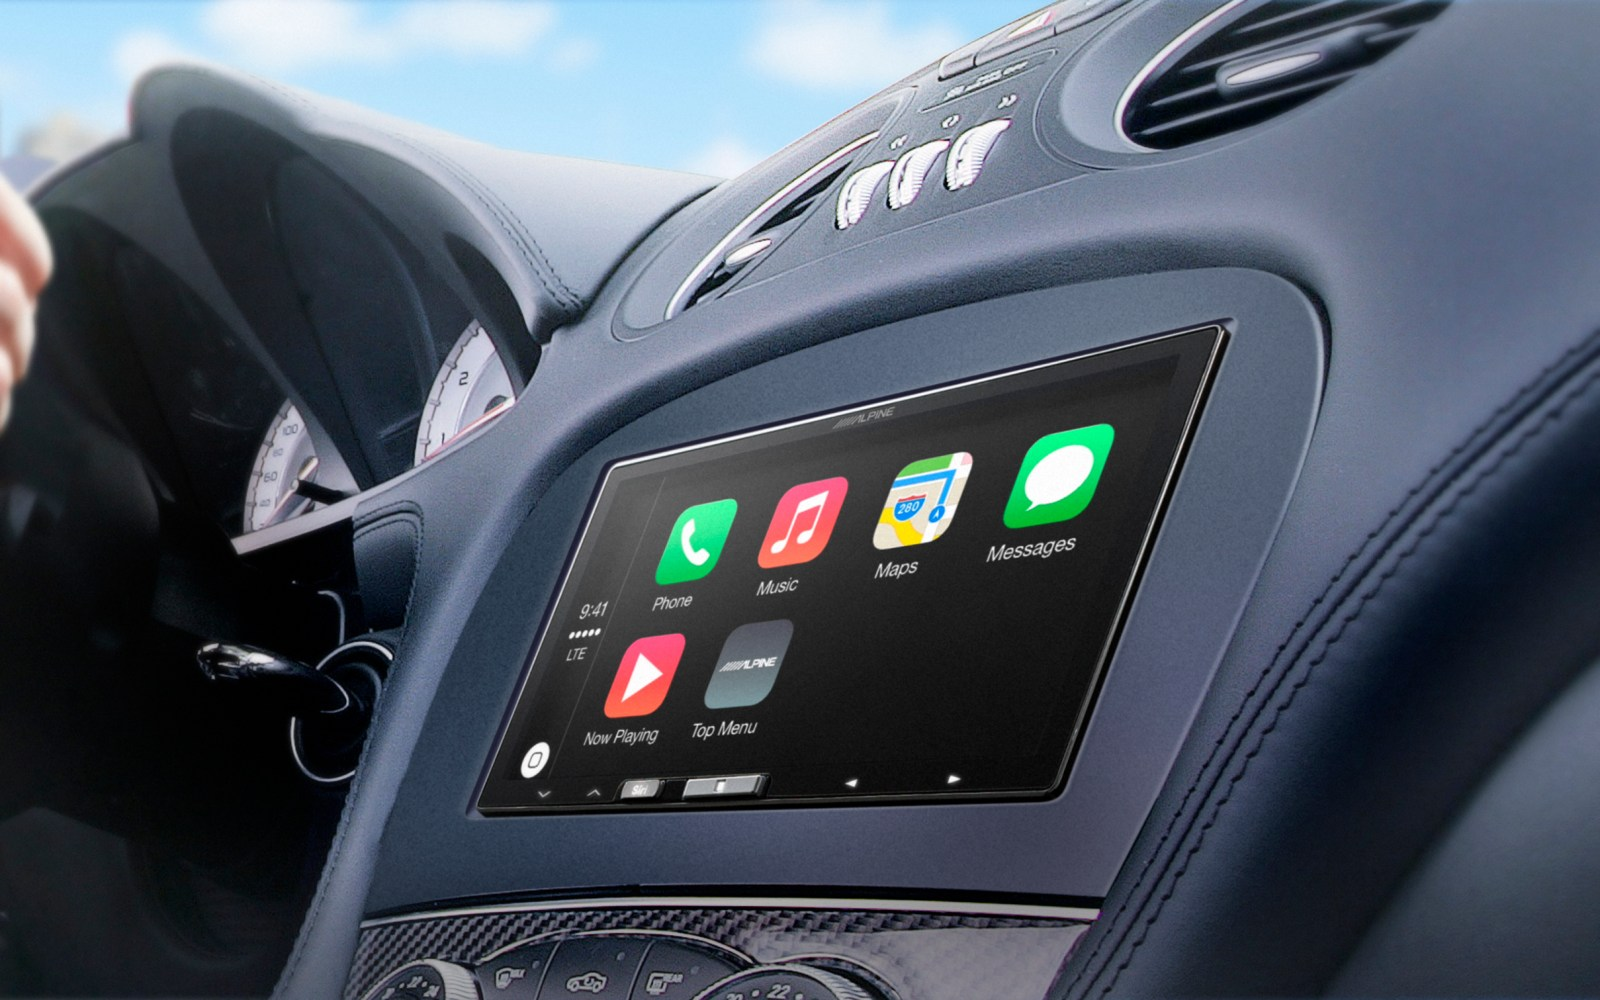 Alpine announces 7-inch iLX-007 aftermarket receiver, its first CarPlay display